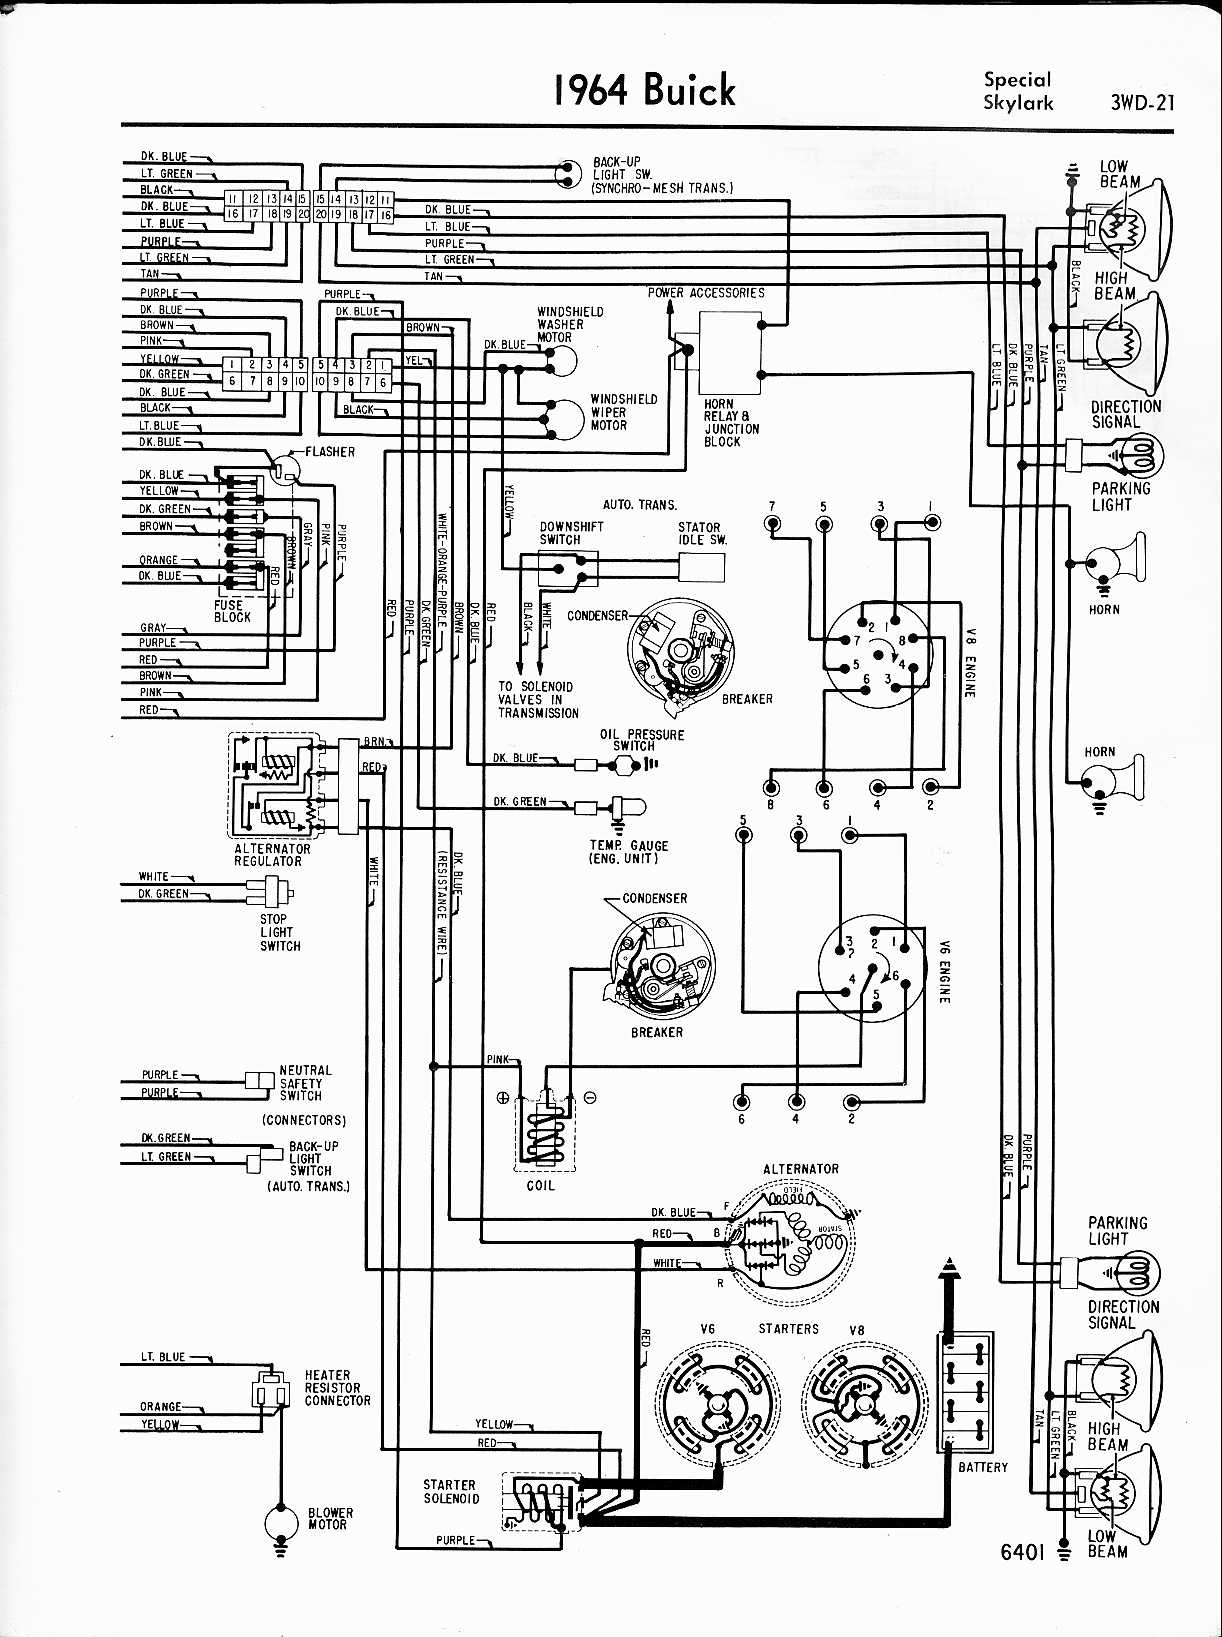 1973 corvette wiring diagram 1973 image wiring diagram 1973 ford truck wiring diagram 1973 discover your wiring diagram on 1973 corvette wiring diagram